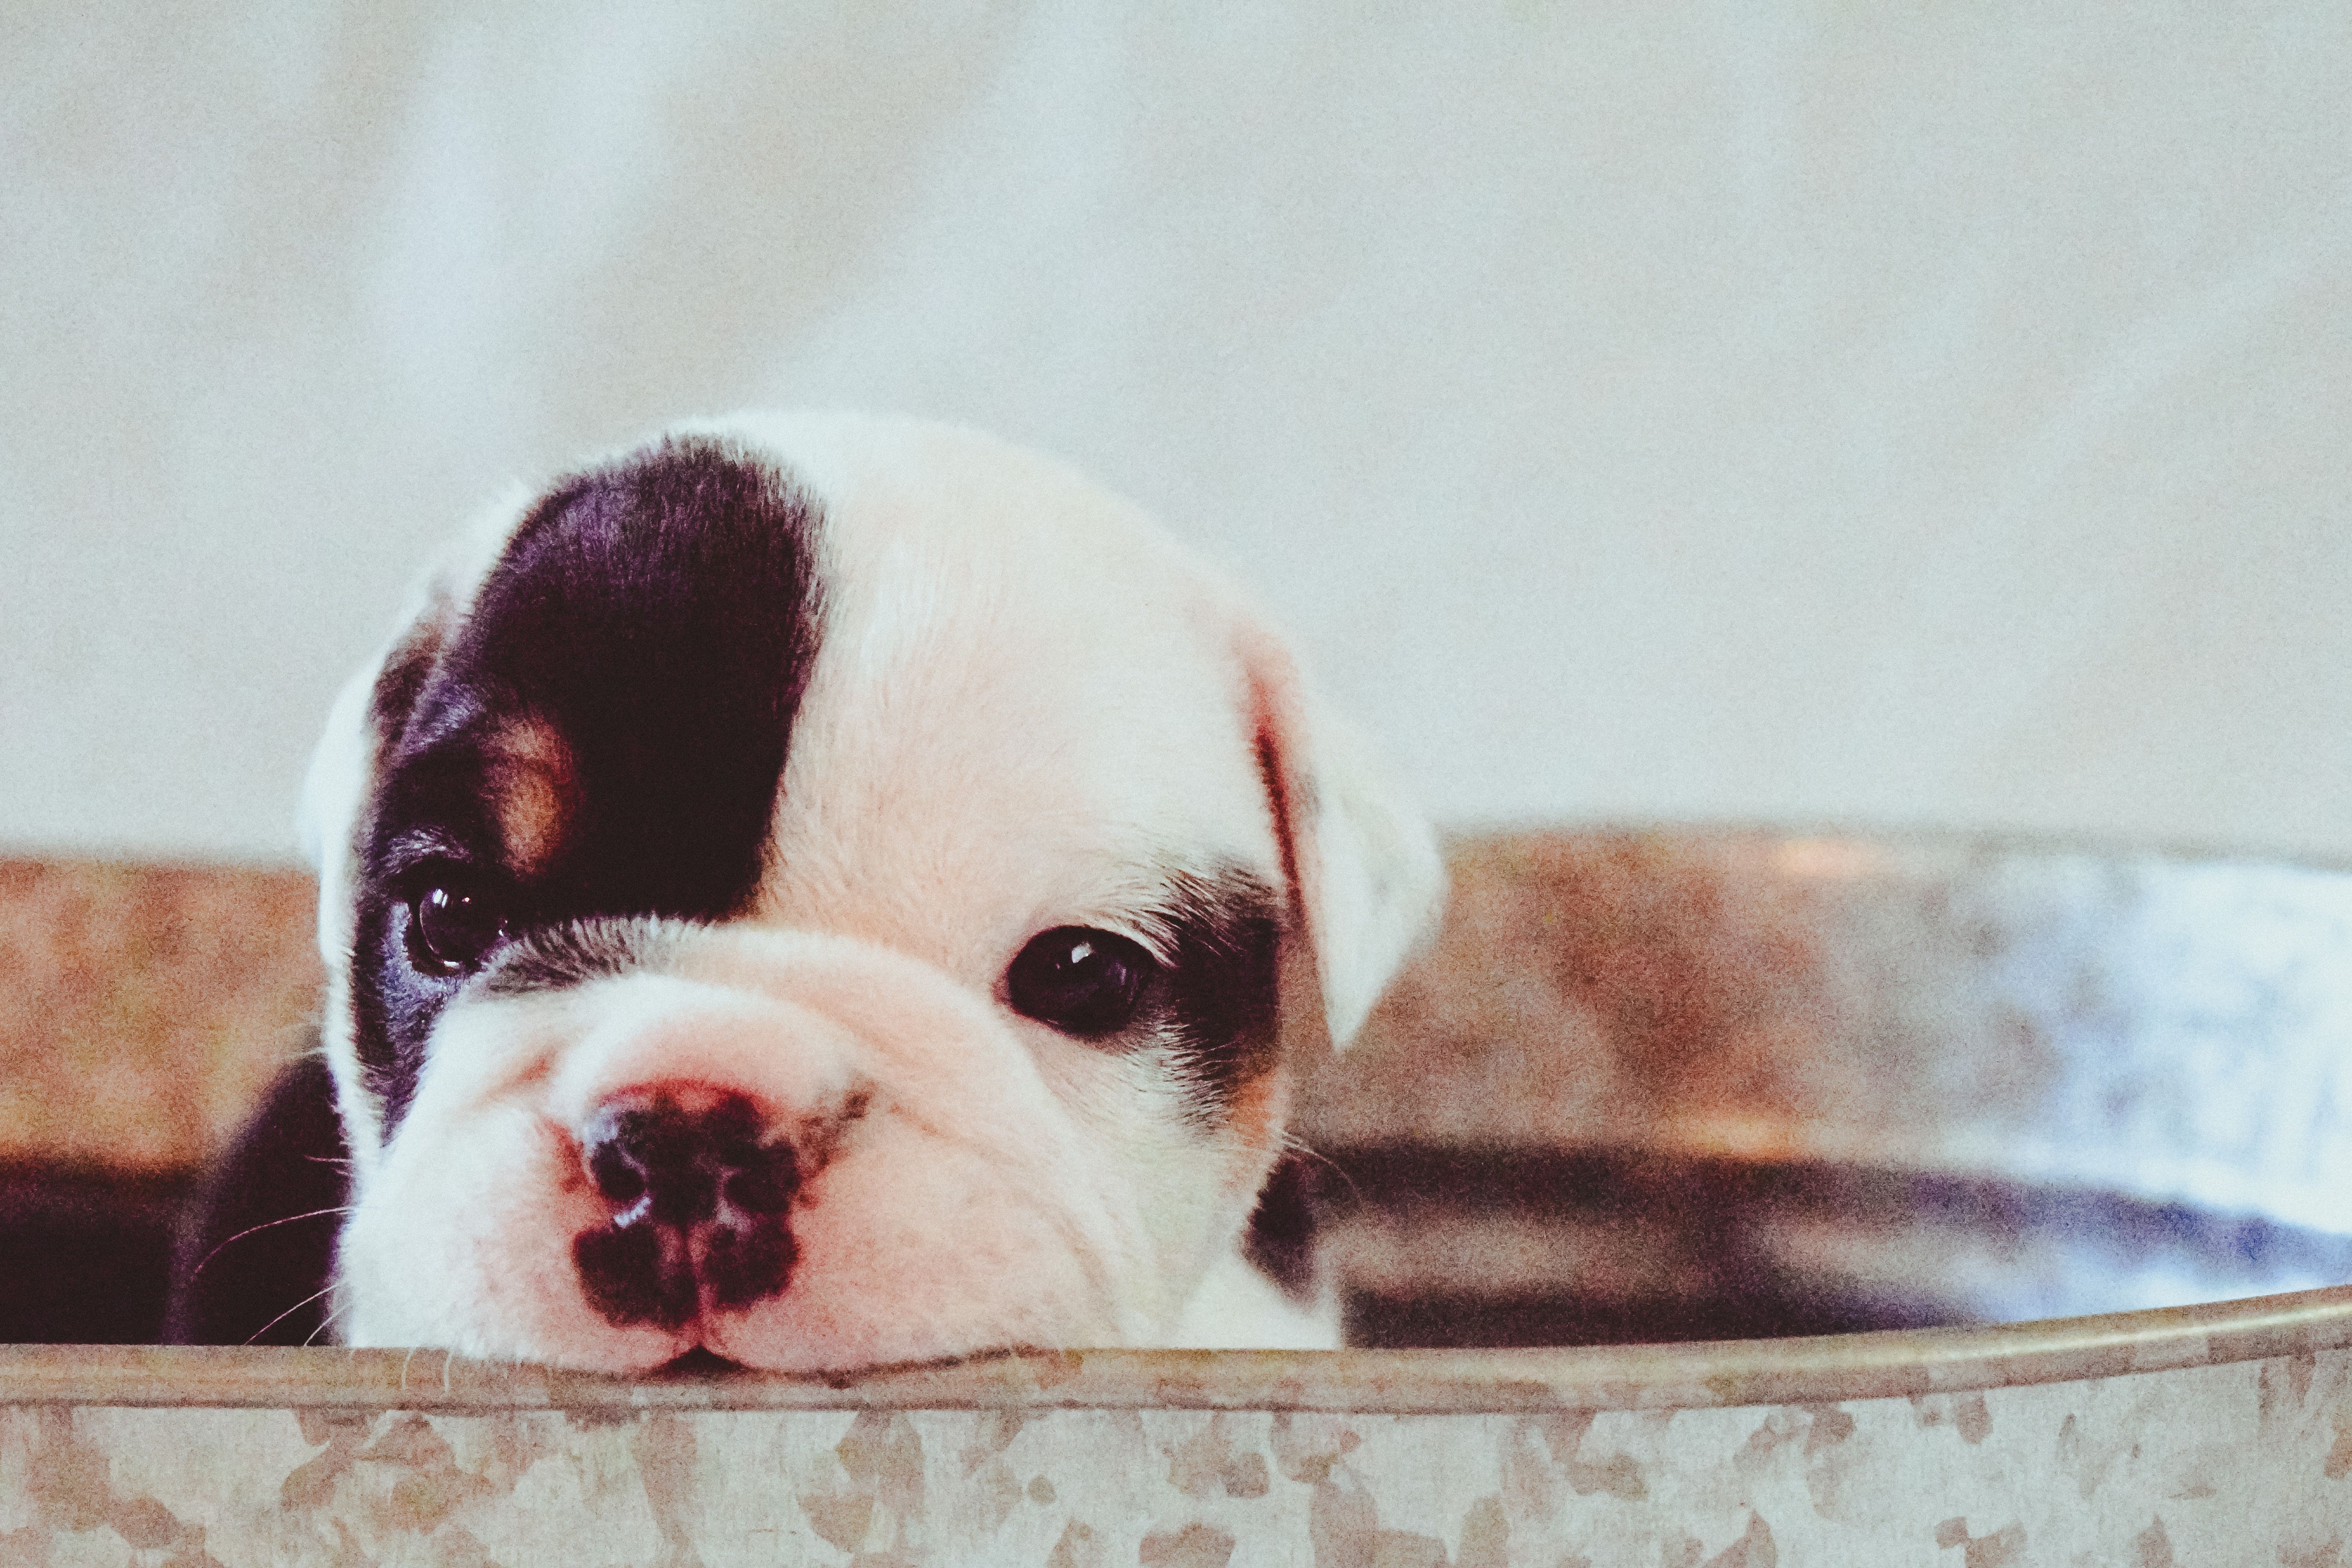 Meet Bullseye Akc English Bulldog Puppy For Sale In Montana